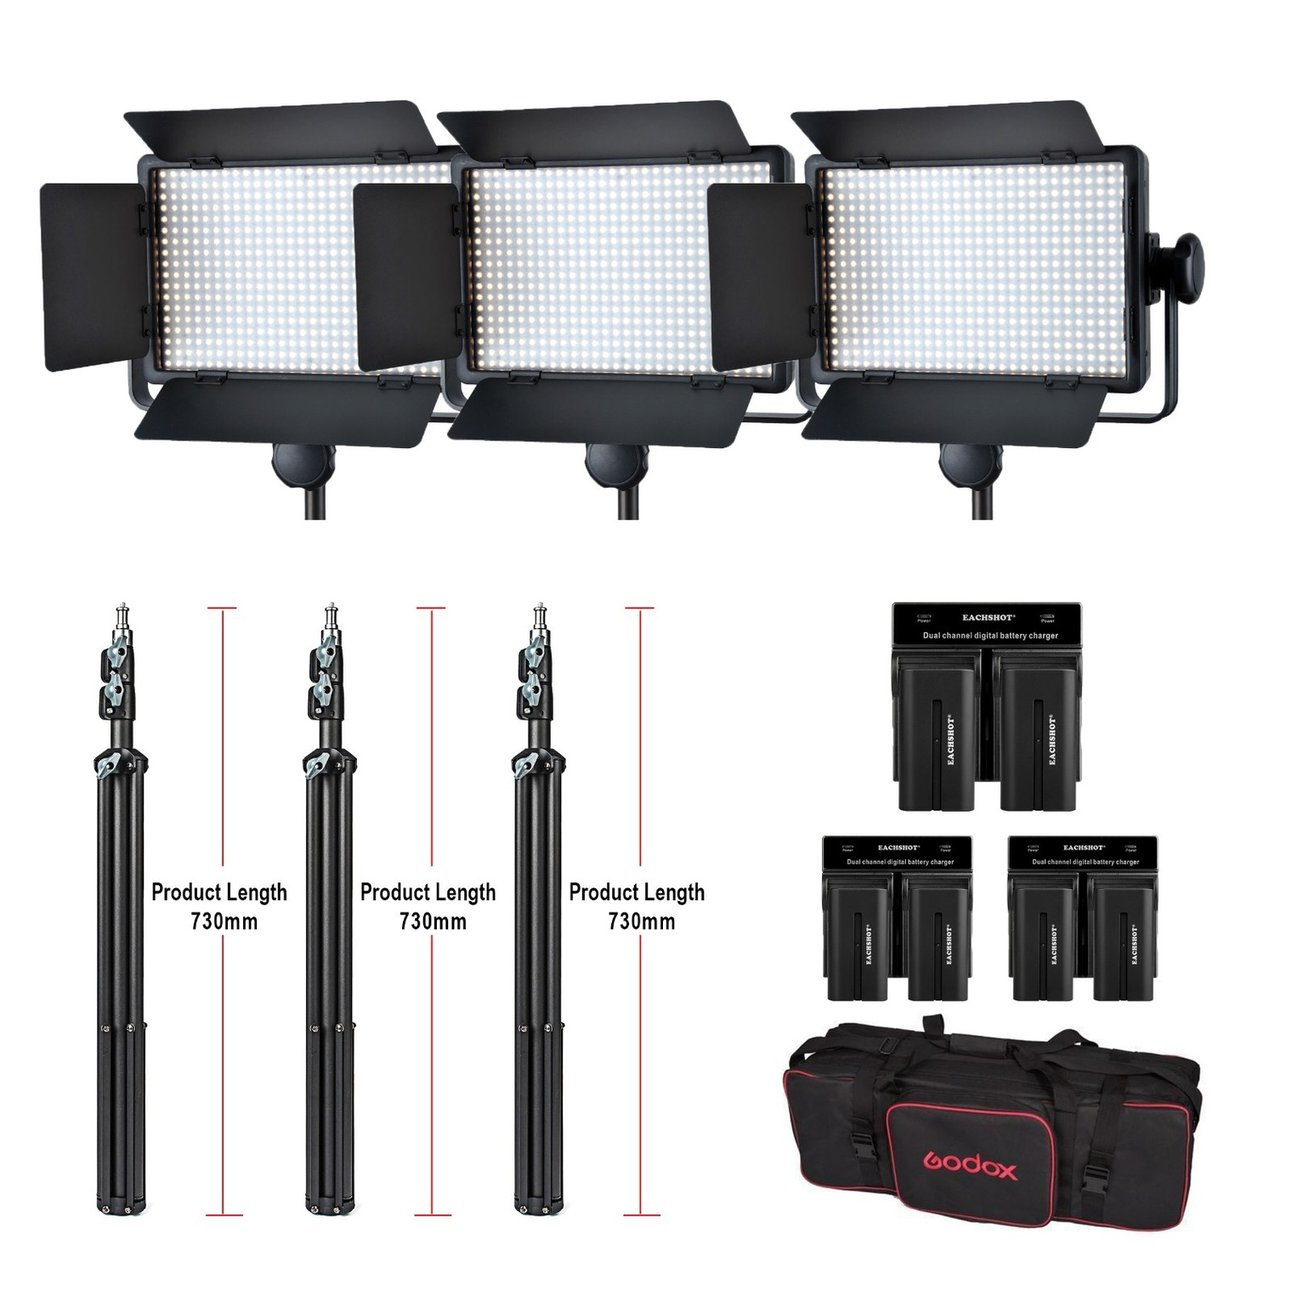 Godox 3x LED500W Kit 5600K 8700LUX LED Video Continuous Light Lamp Panel + stand + battery + battery charger W/ carrying Bag top quality godox led1000c 3300k 5600k led video continuous light lamp panel lux 4400